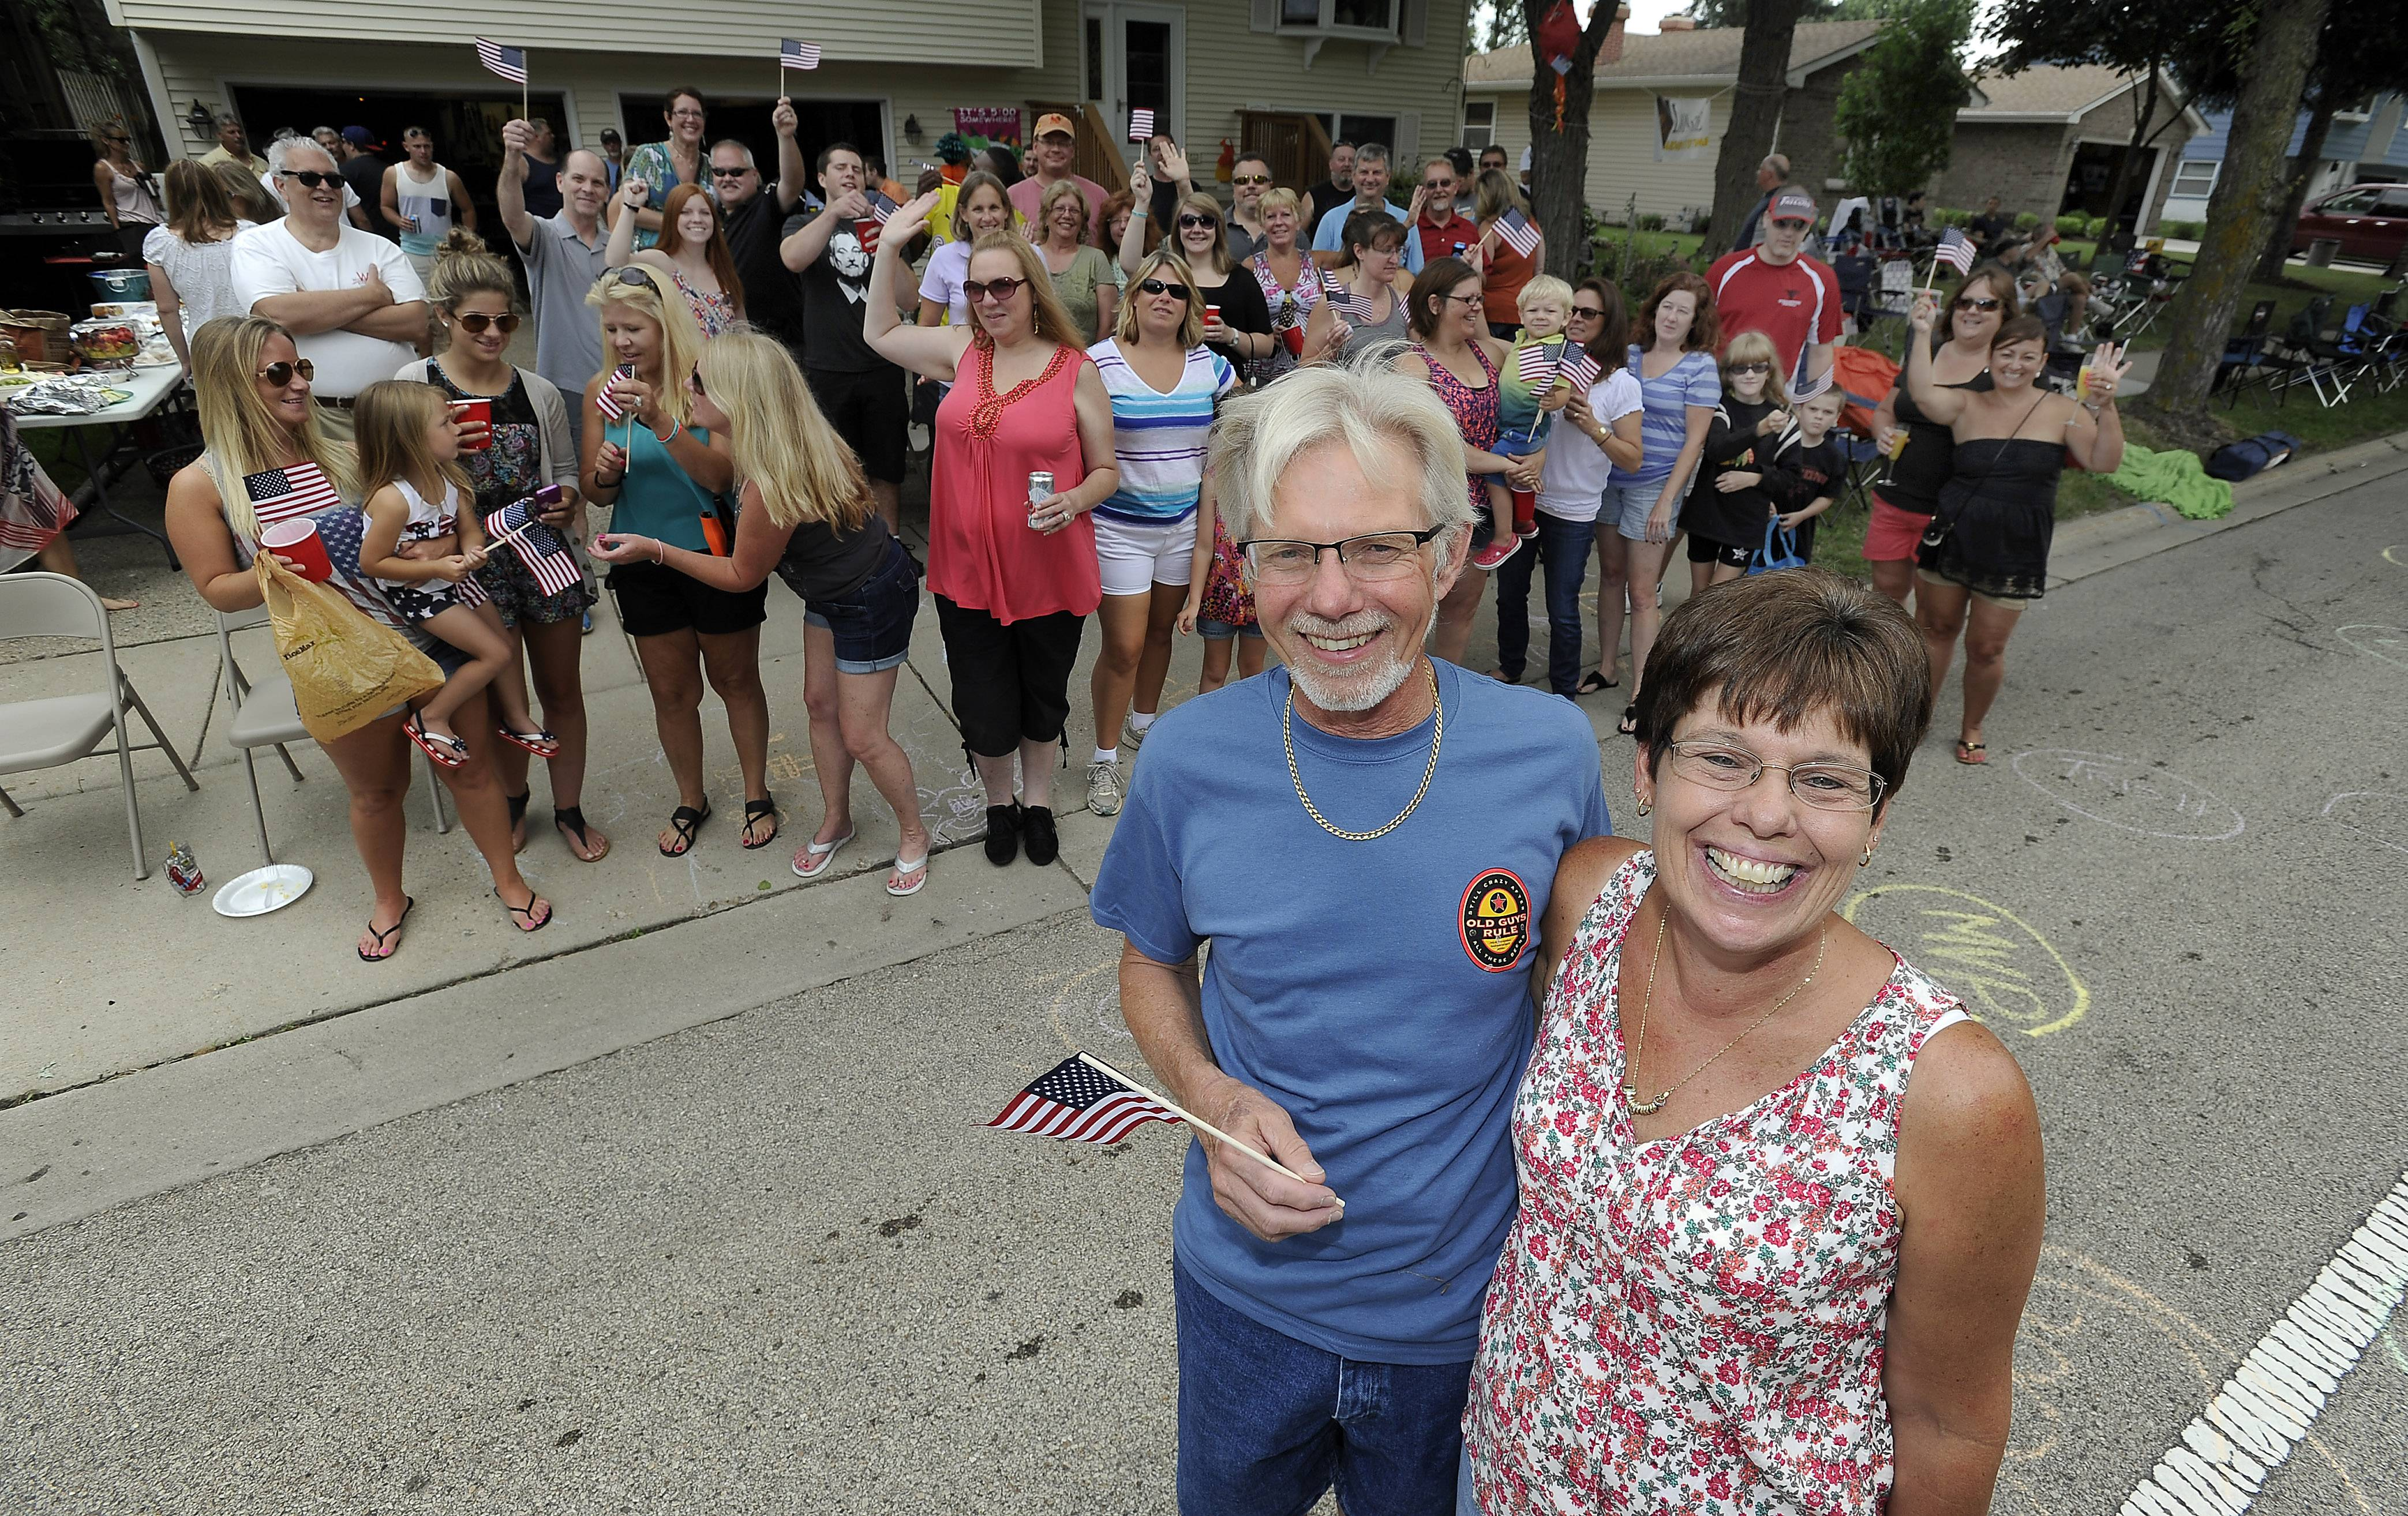 Heinz and Trish Koch and the rest of their group of friends and family party in the Streamwood Summer Celebration parade on Saturday.